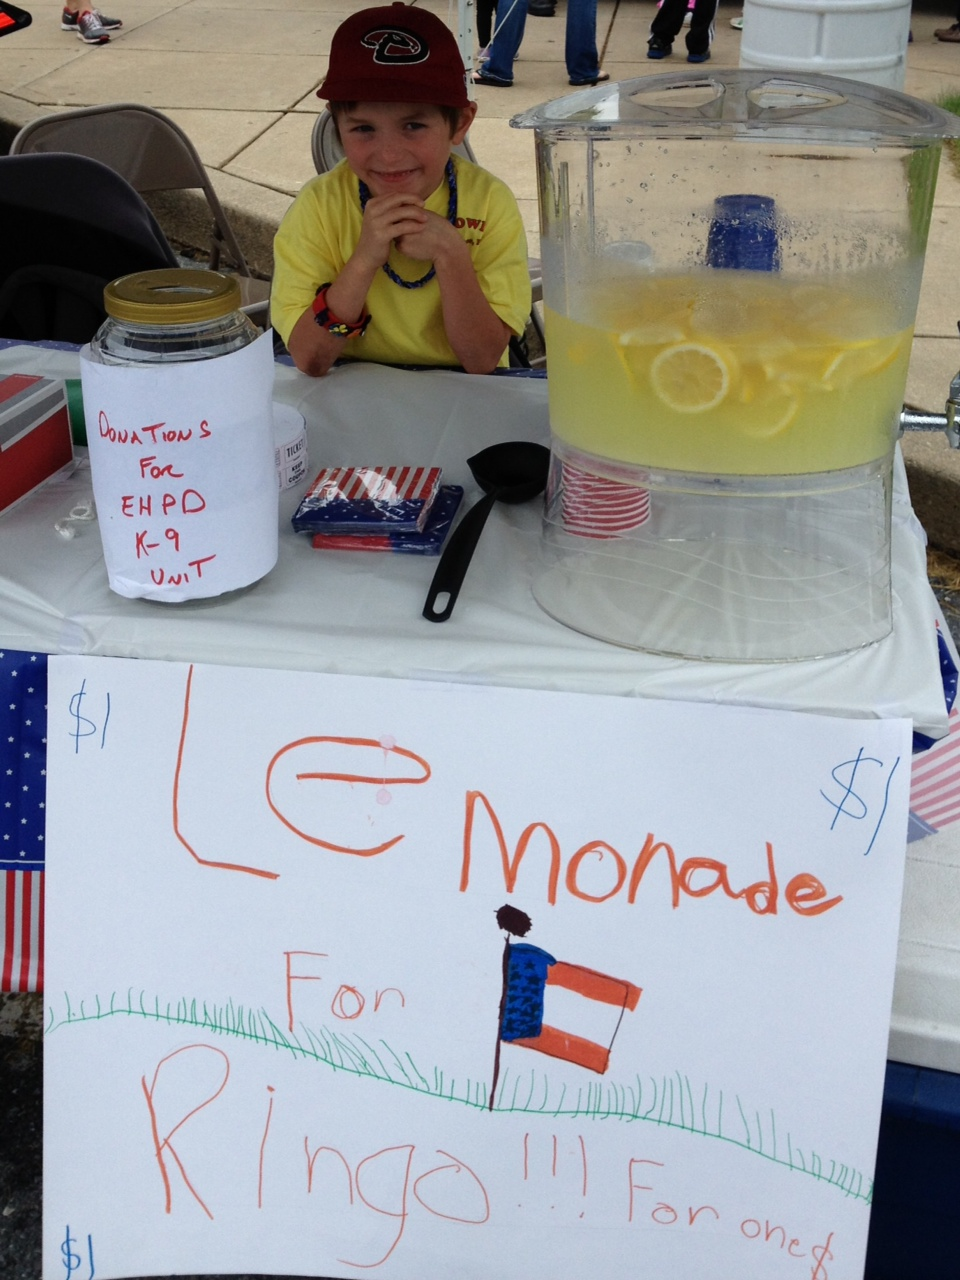 Nick Lemonade stand